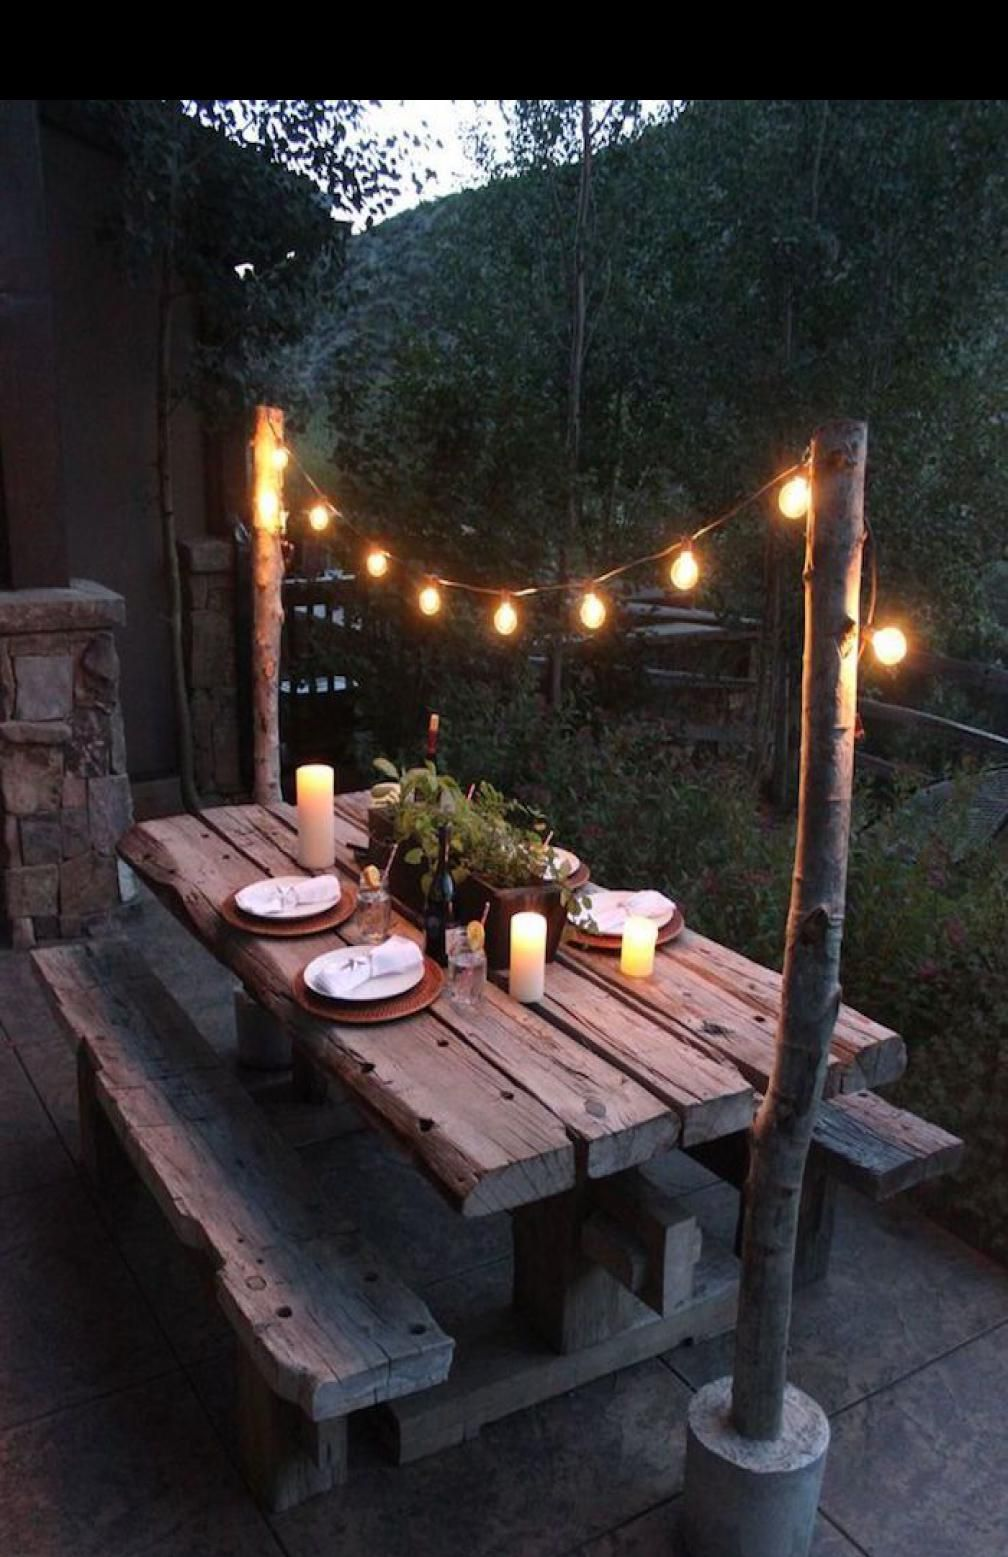 Eclairage Terrasse Bois Lanterne Exterieur Lumiere Jardin Idee Luminaire Pas Cher Spots Led So In 2020 Outdoor Dining Spaces Outdoor Deck Lighting Outdoor Dining Table